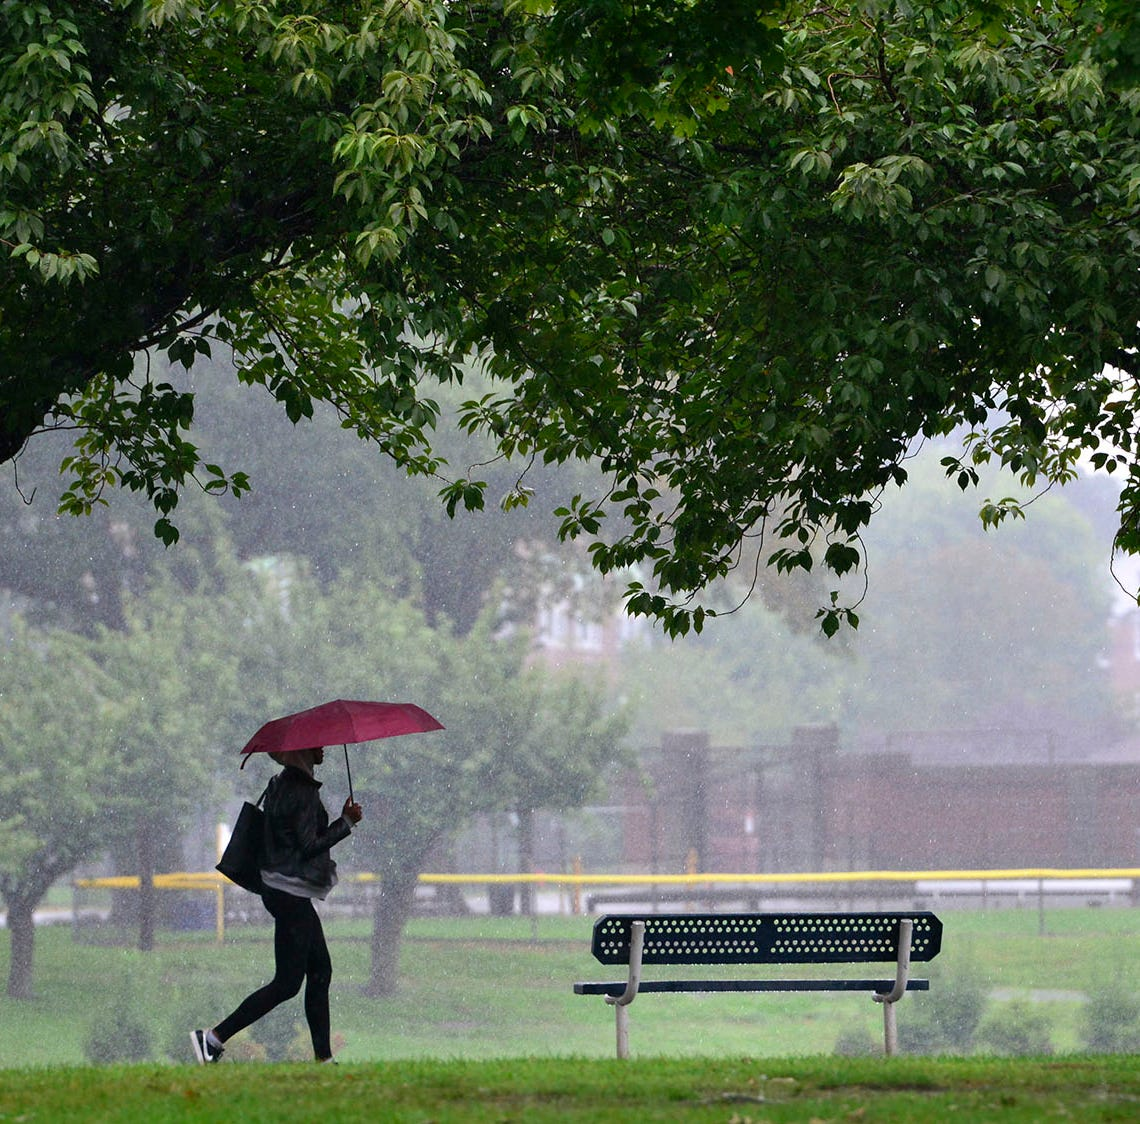 National Weather Service issues tornado watch for North Jersey